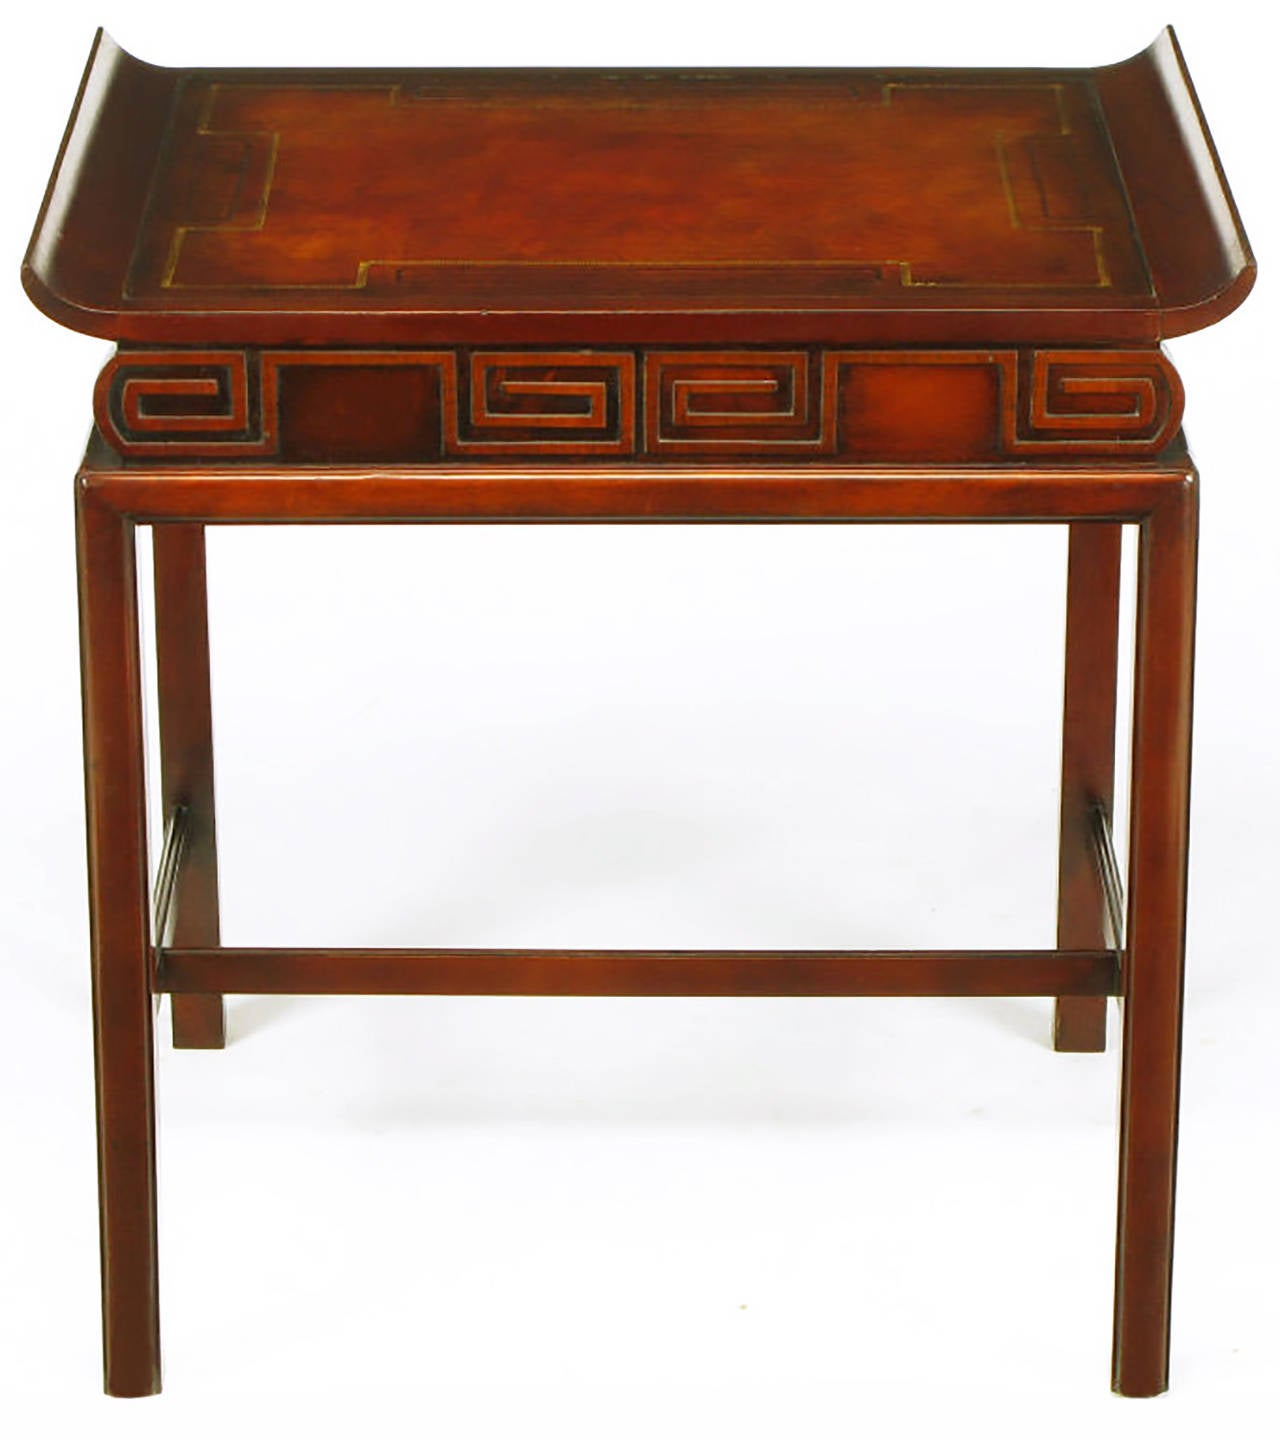 Pair of Curved Mahogany and Leather Top End Tables with Greek Key Reliefs 2